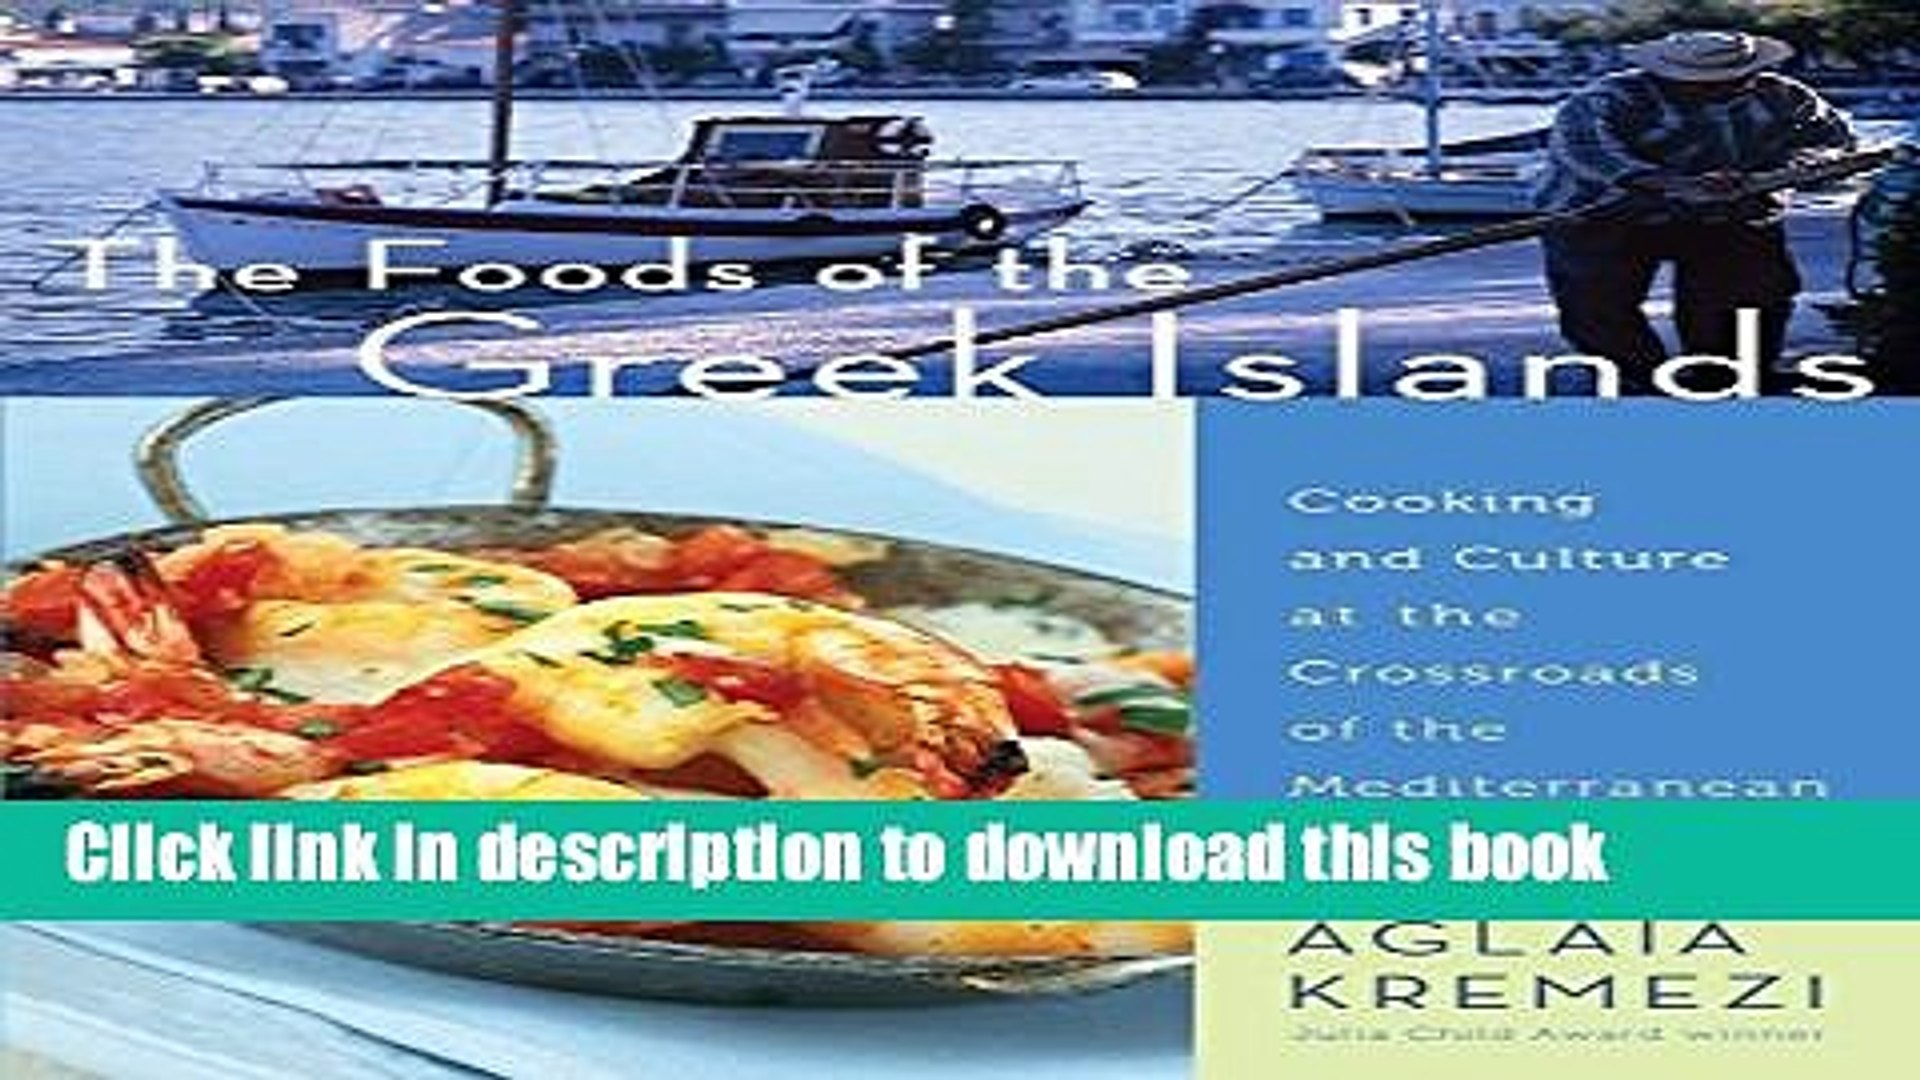 Ebook The Foods of the Greek Islands: Cooking and Culture at the Crossroads of the Mediterranean